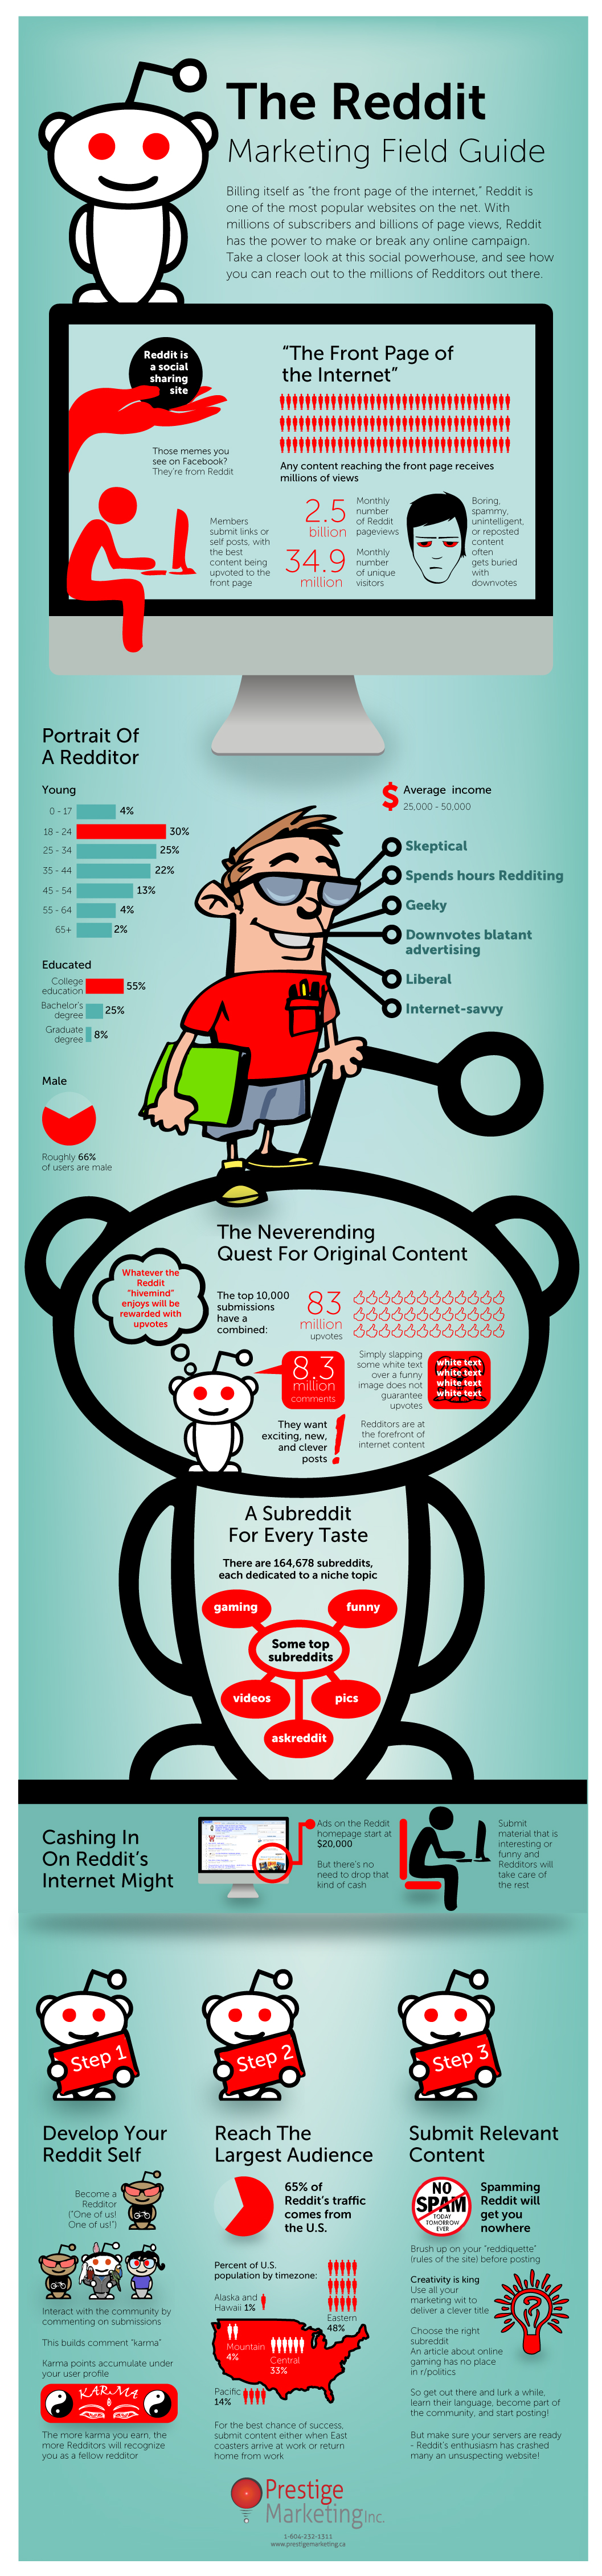 The Reddit Marketing Field Guide